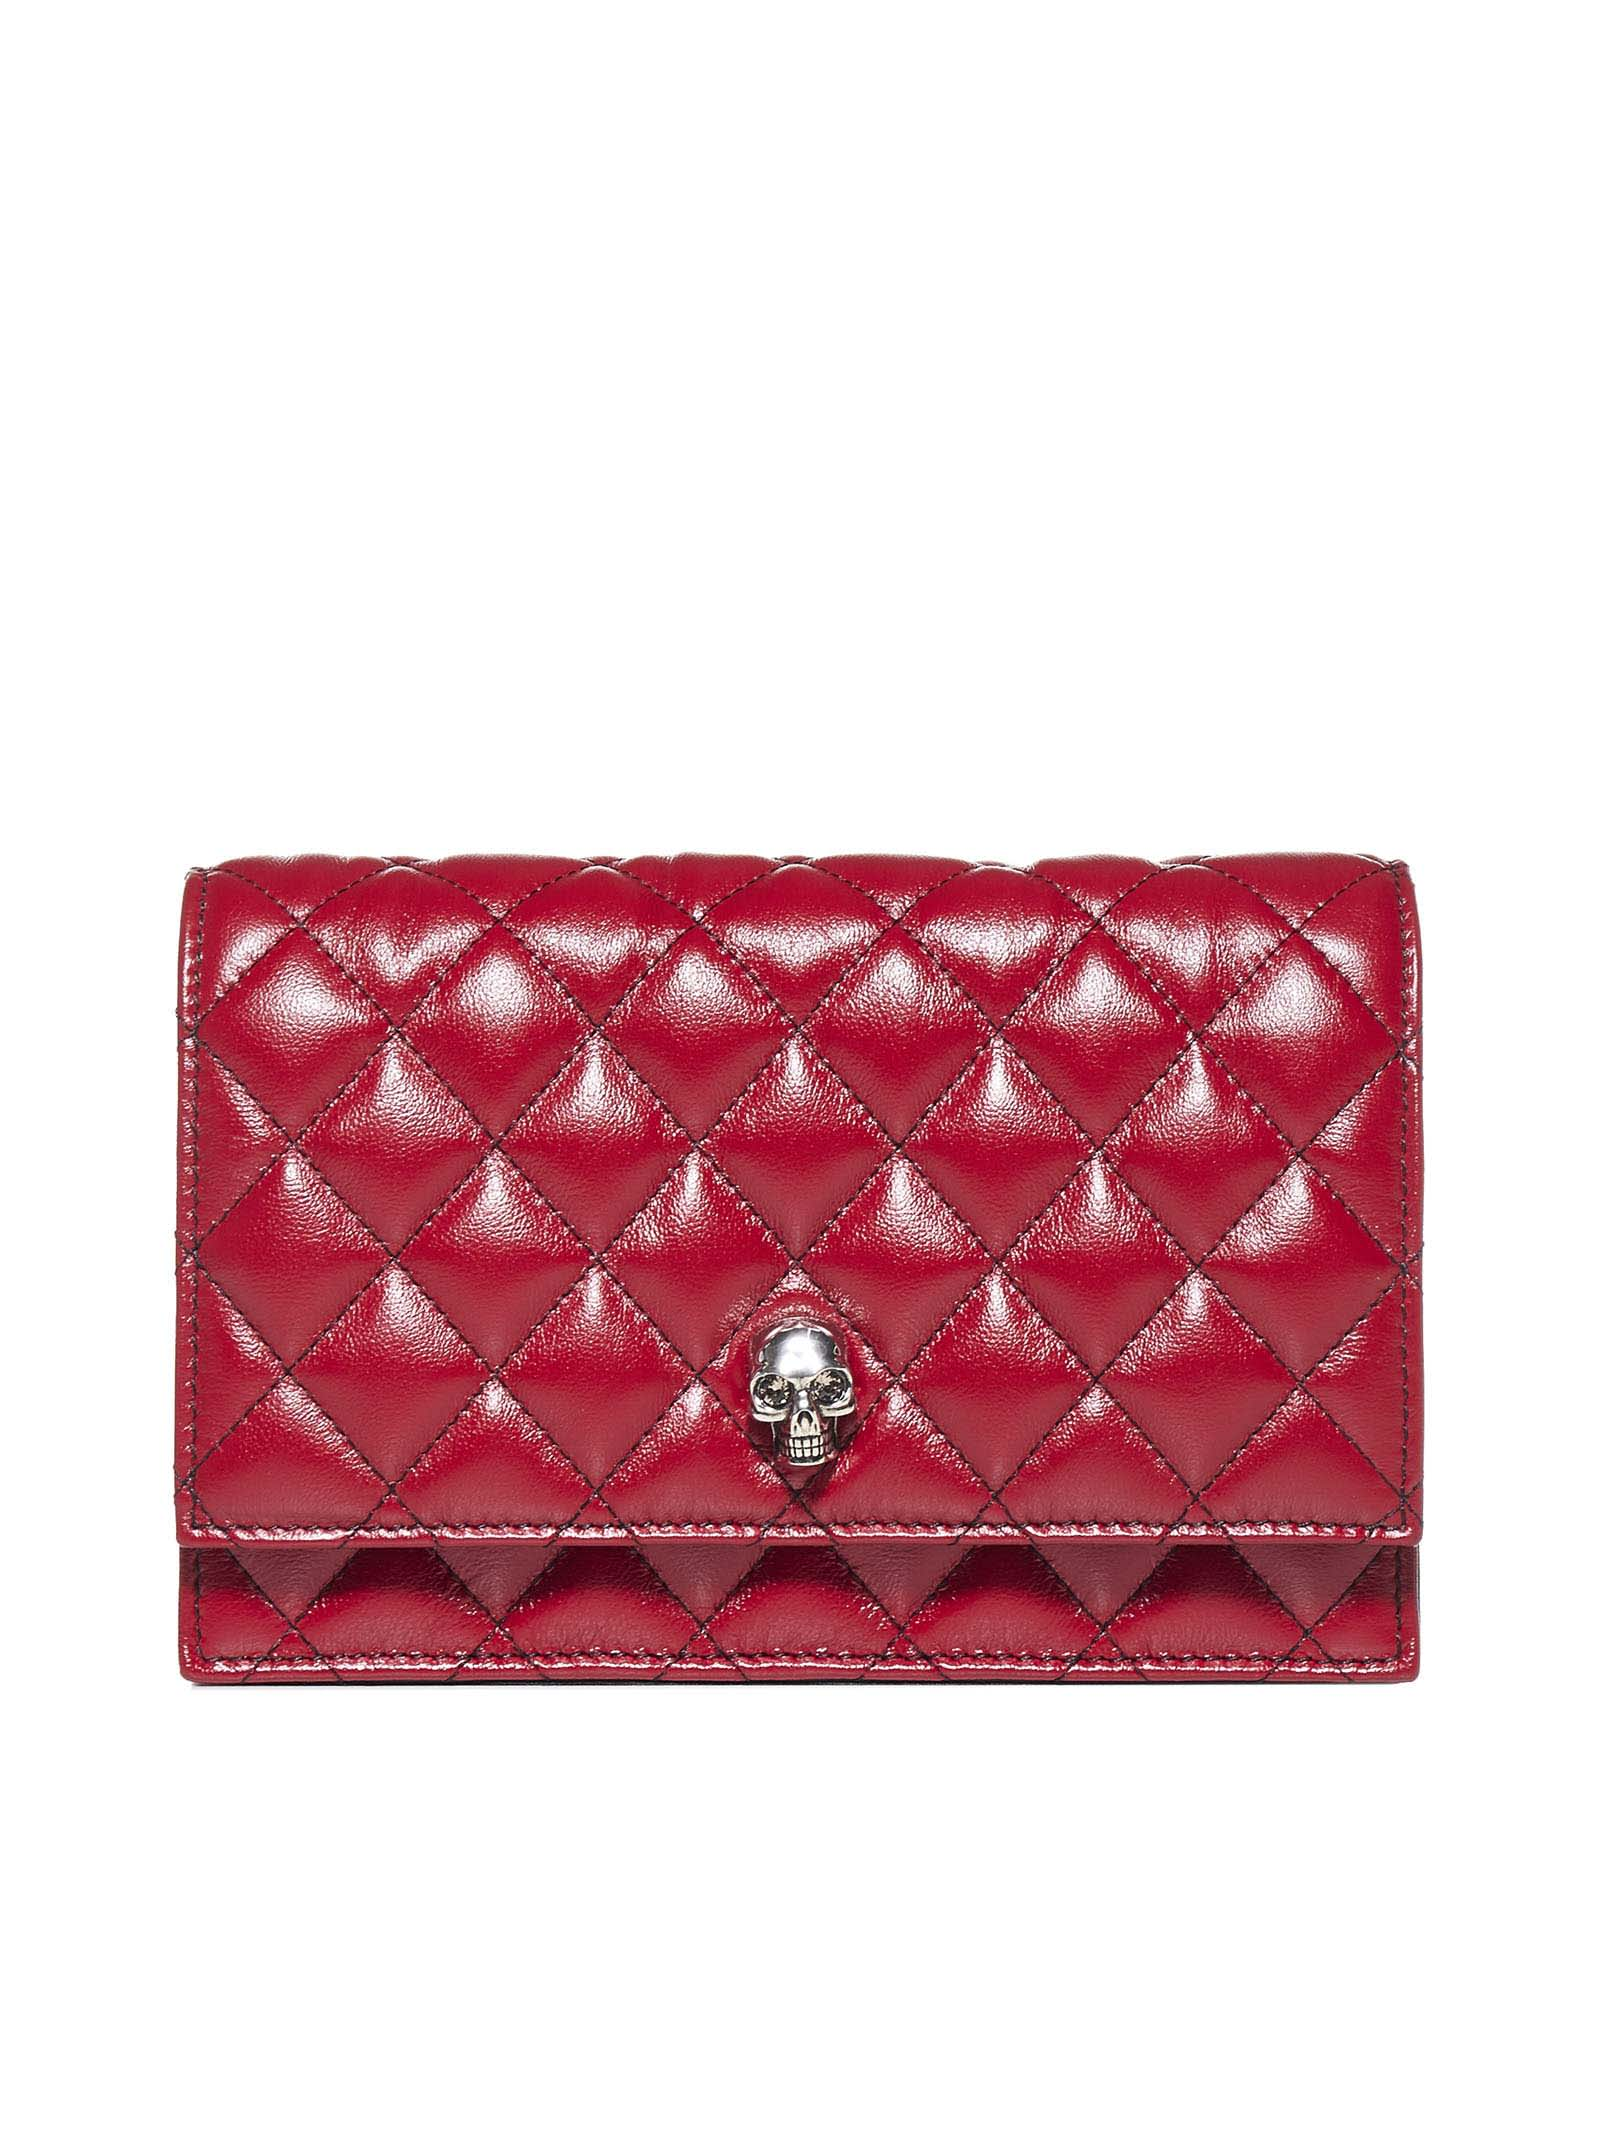 Alexander Mcqueen Leathers SKULL QUILTED LEATHER MINI BAG